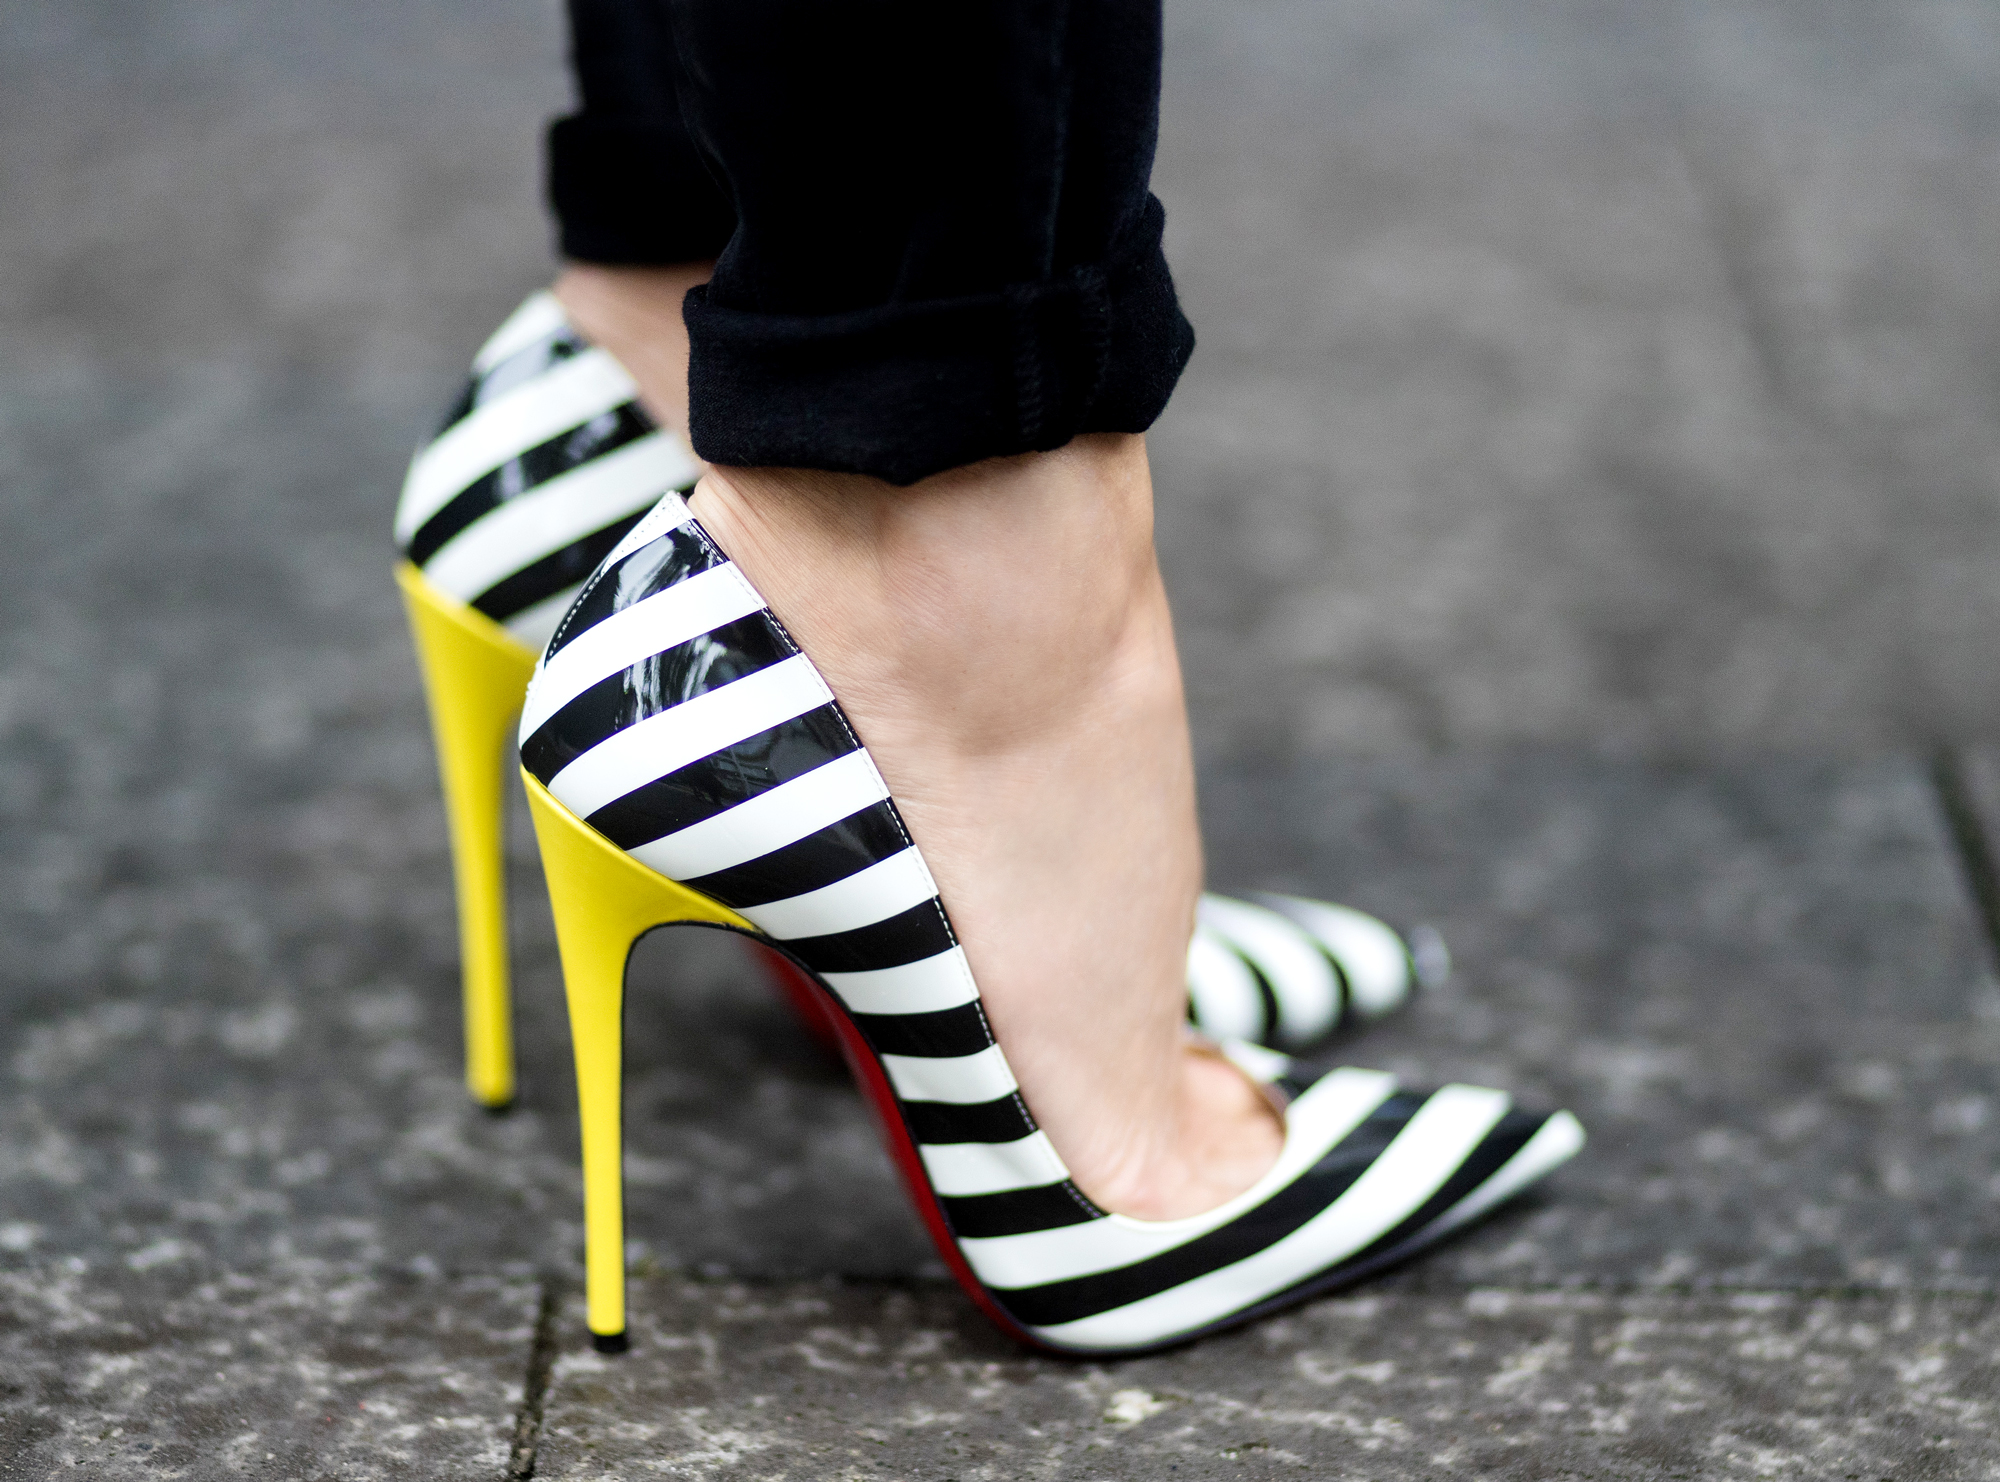 Goodbye, Blisters! Here's Everything You Need To Know About Making Heels More Comfortable